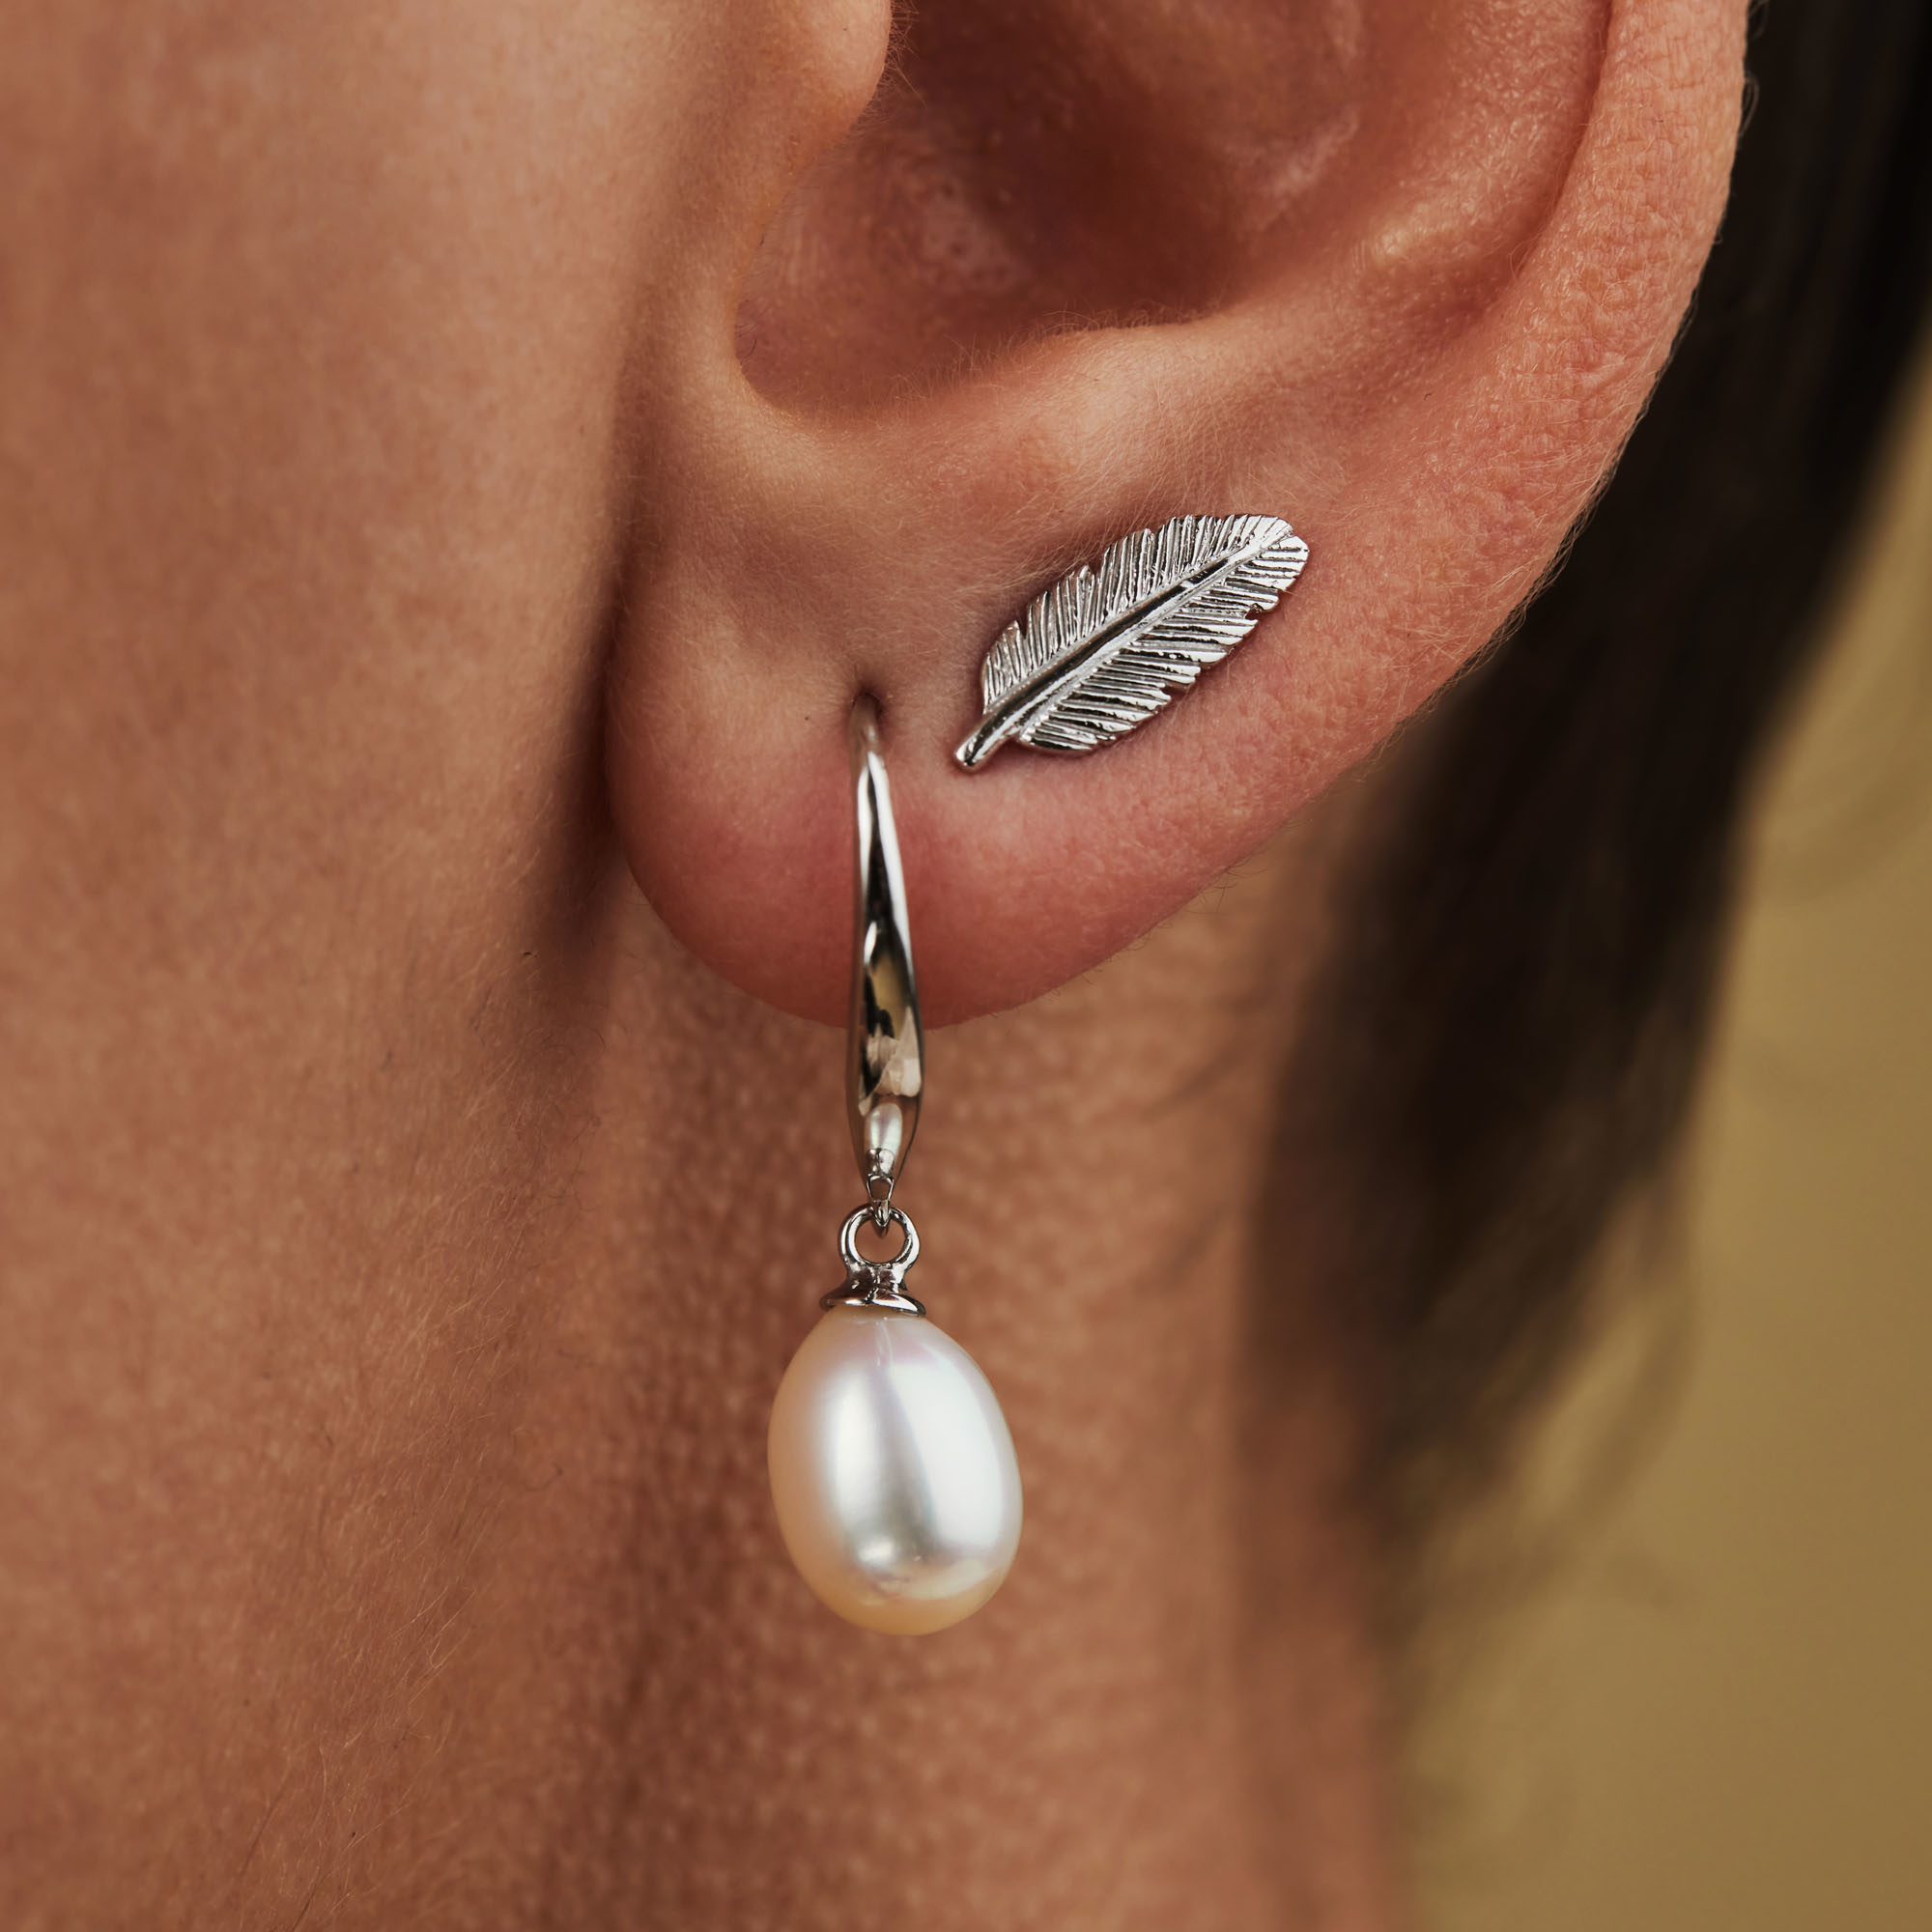 Selected Jewels Julie Lucie 925 sterling silver ear studs with feathers